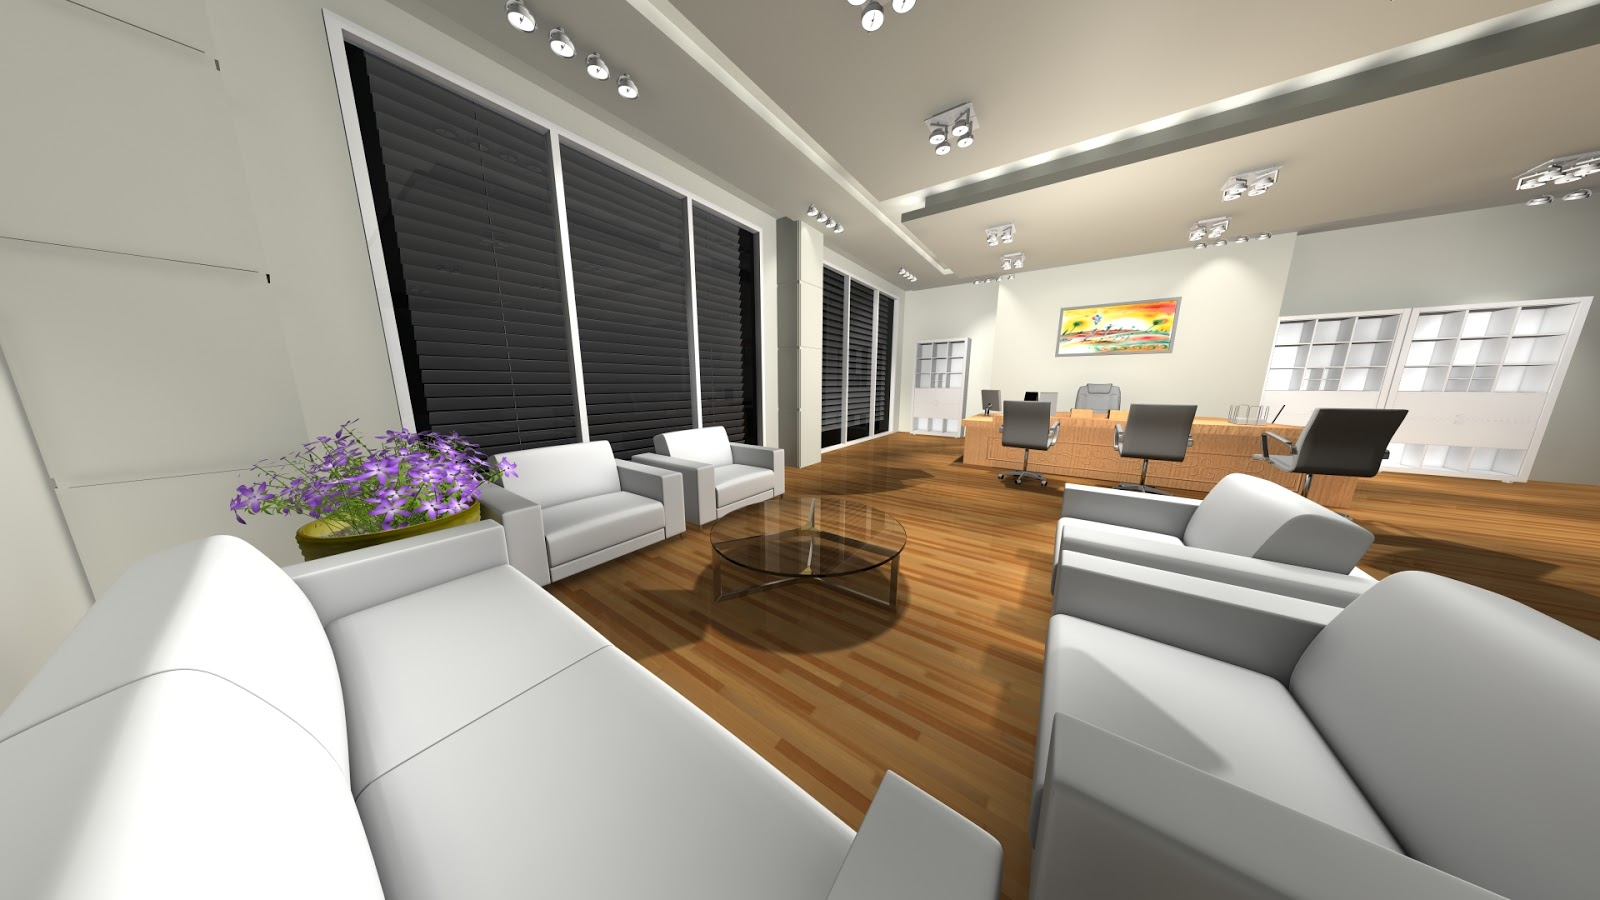 Sajid designer Office room 3d interior design 3ds max